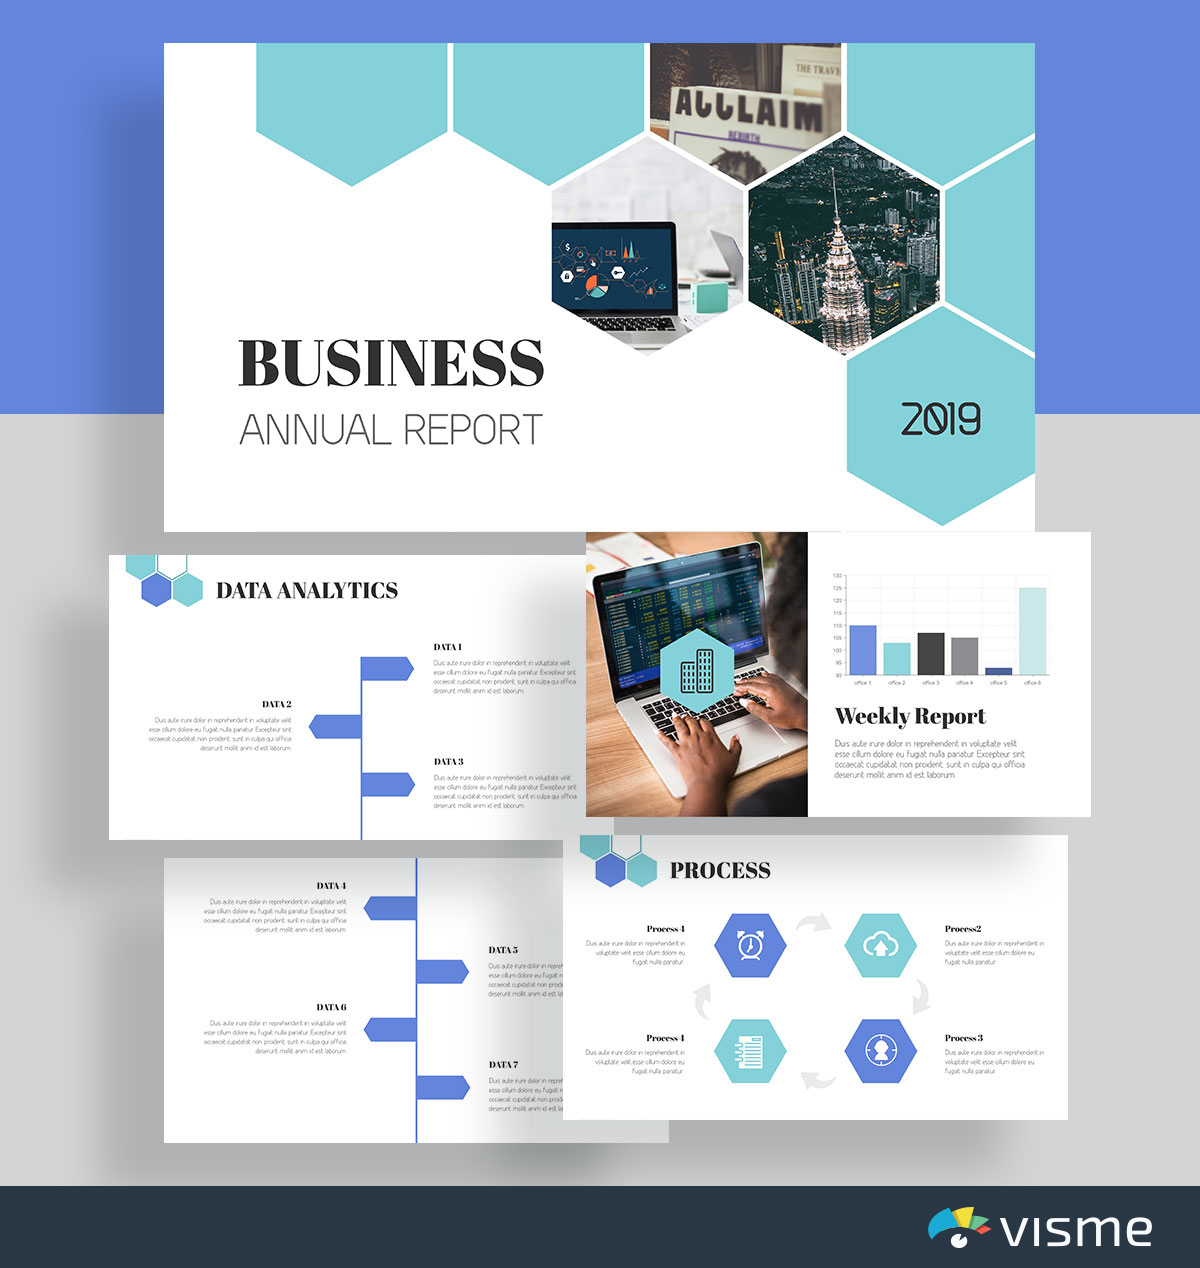 presentation slides - business annual report template visme